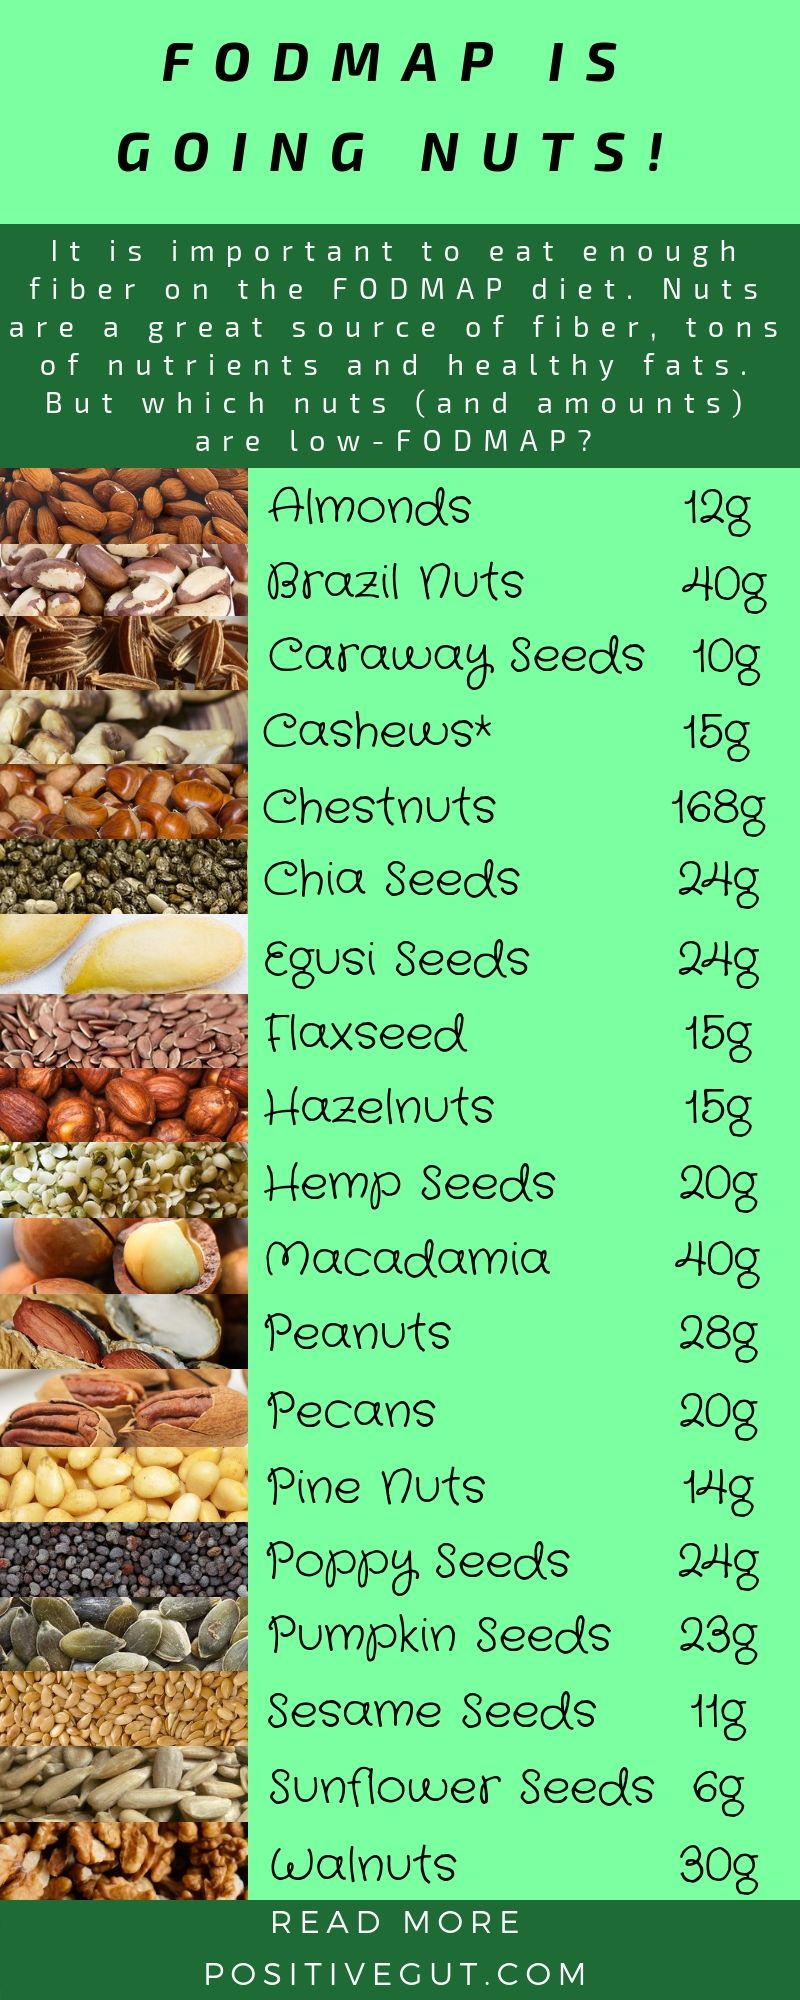 can i eat nuts on fodmap diet